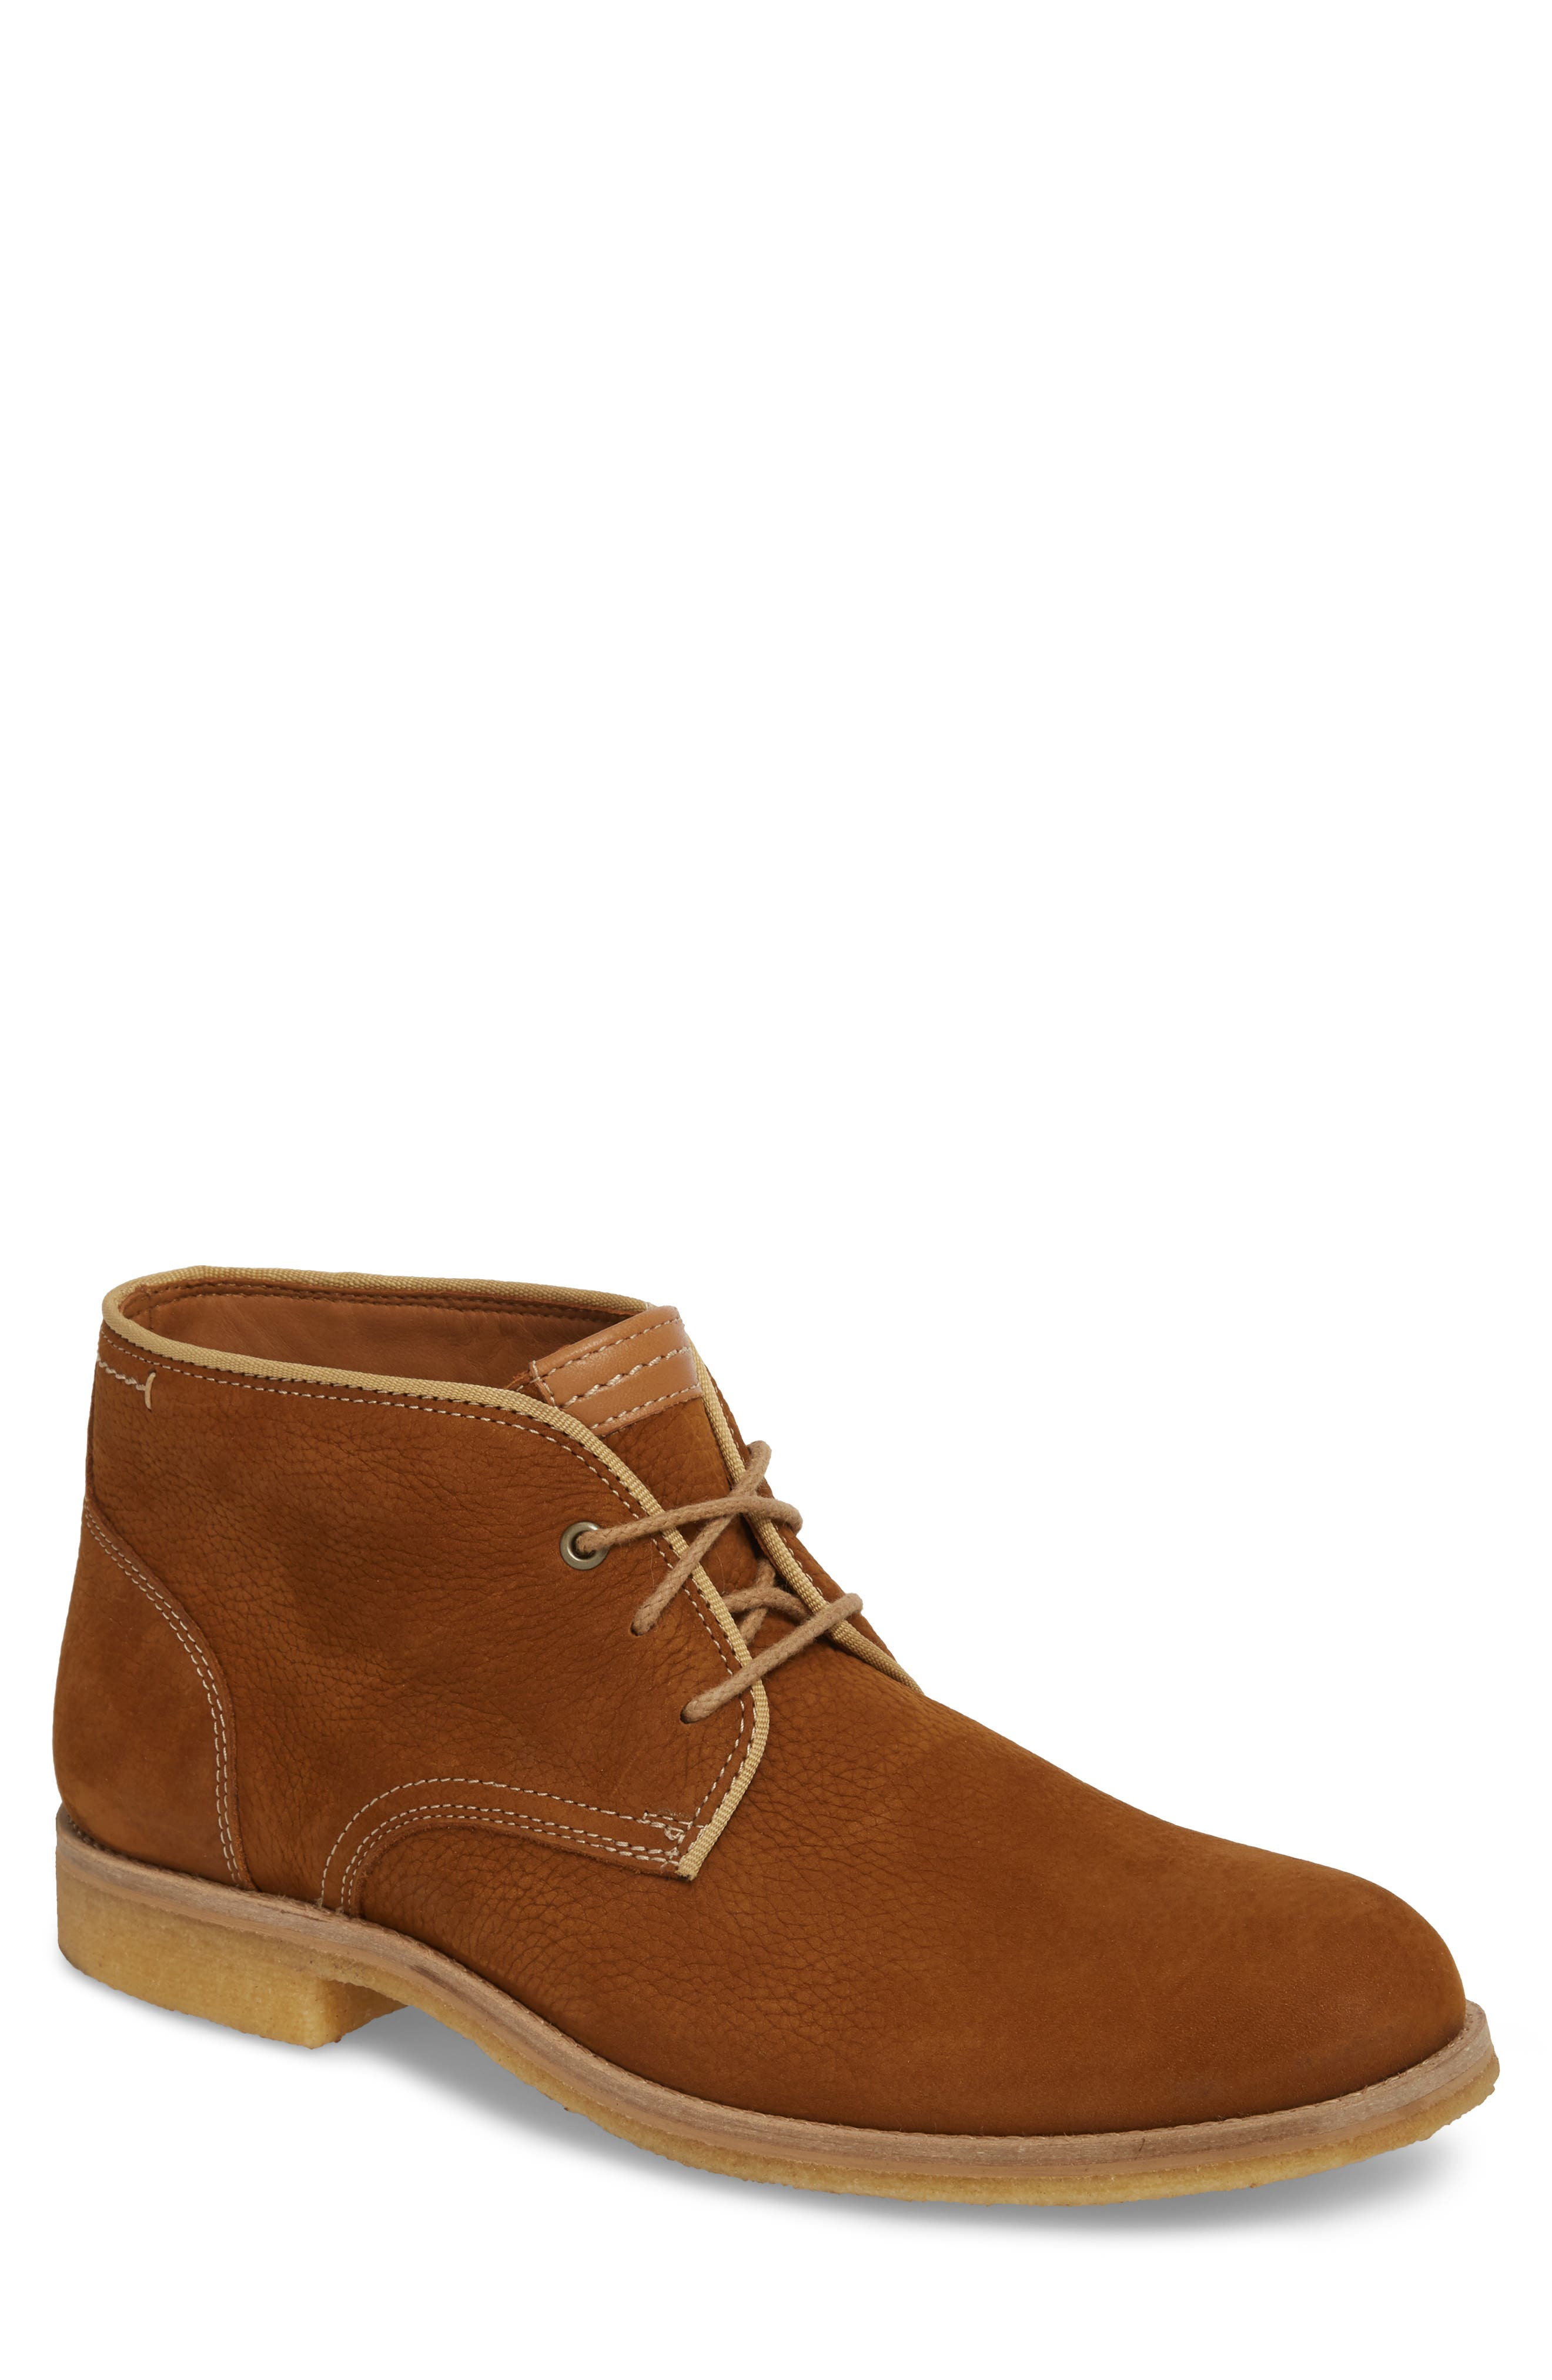 Howell Water Resistant Chukka Boot,                         Main,                         color, Tan Nubuck Leather